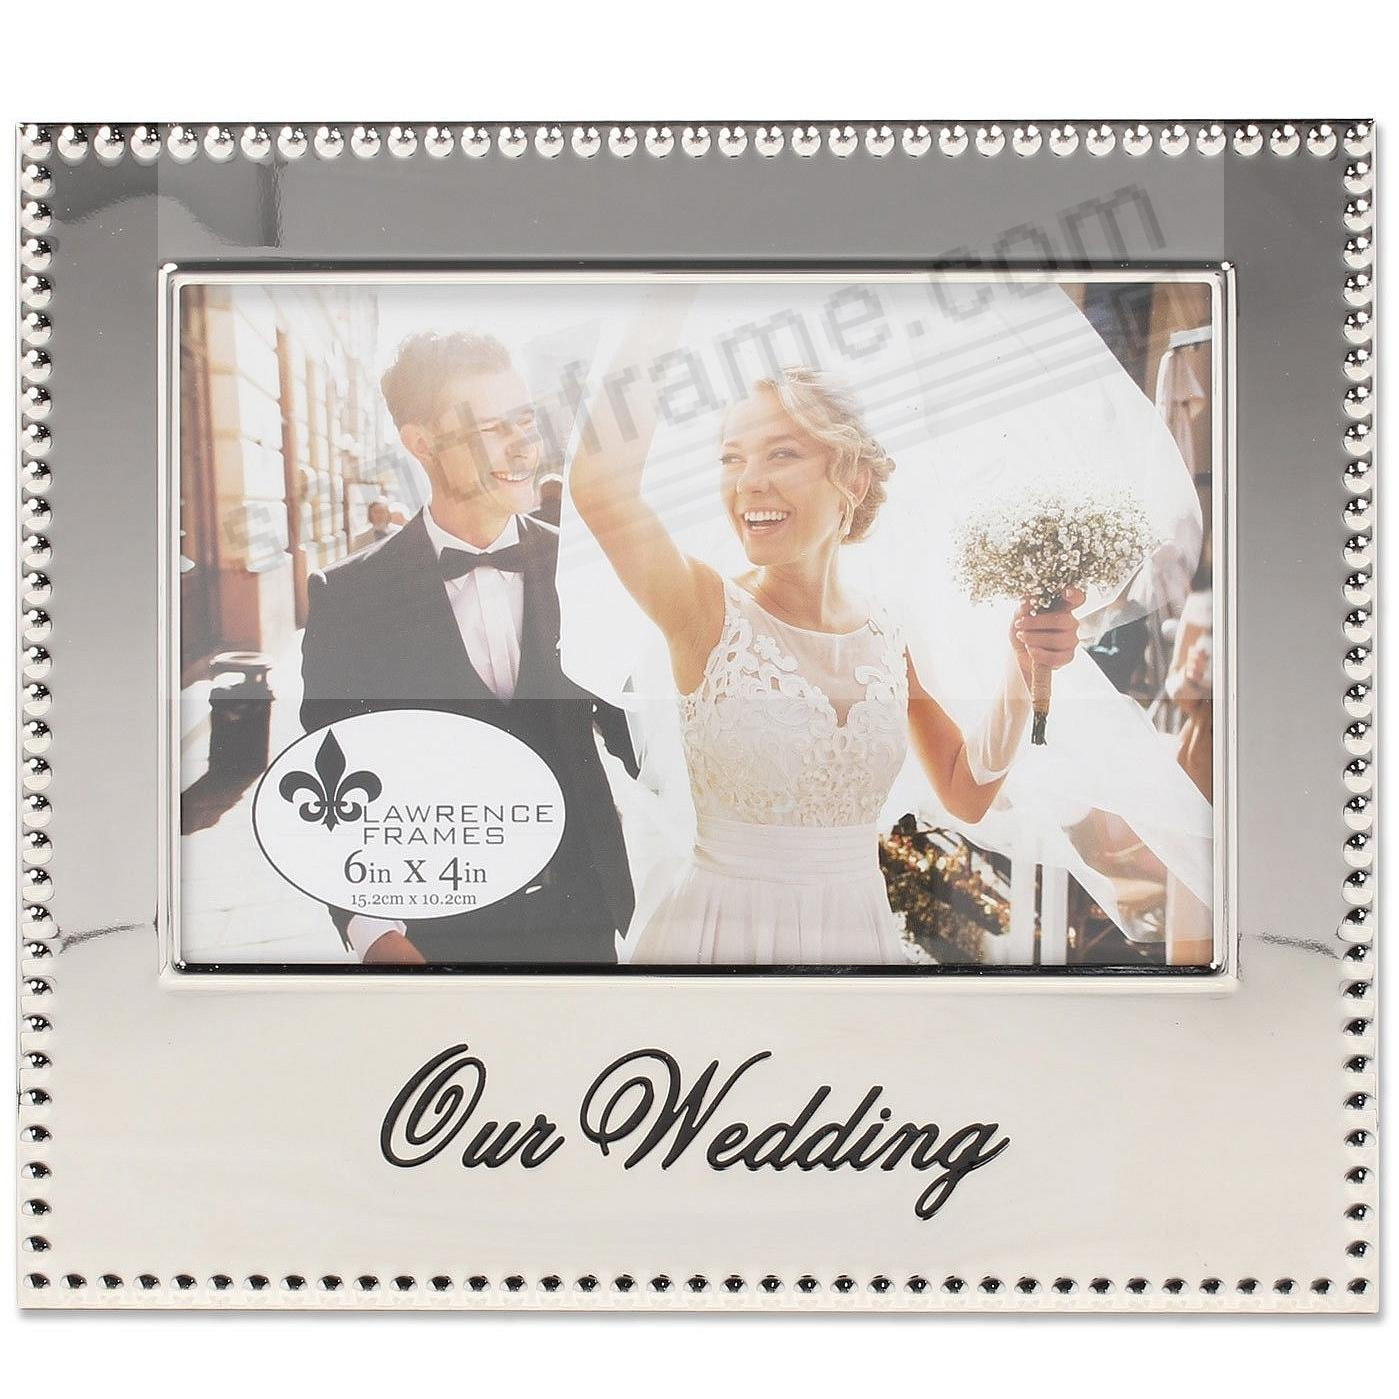 OUR WEDDING special engraved celebration frame